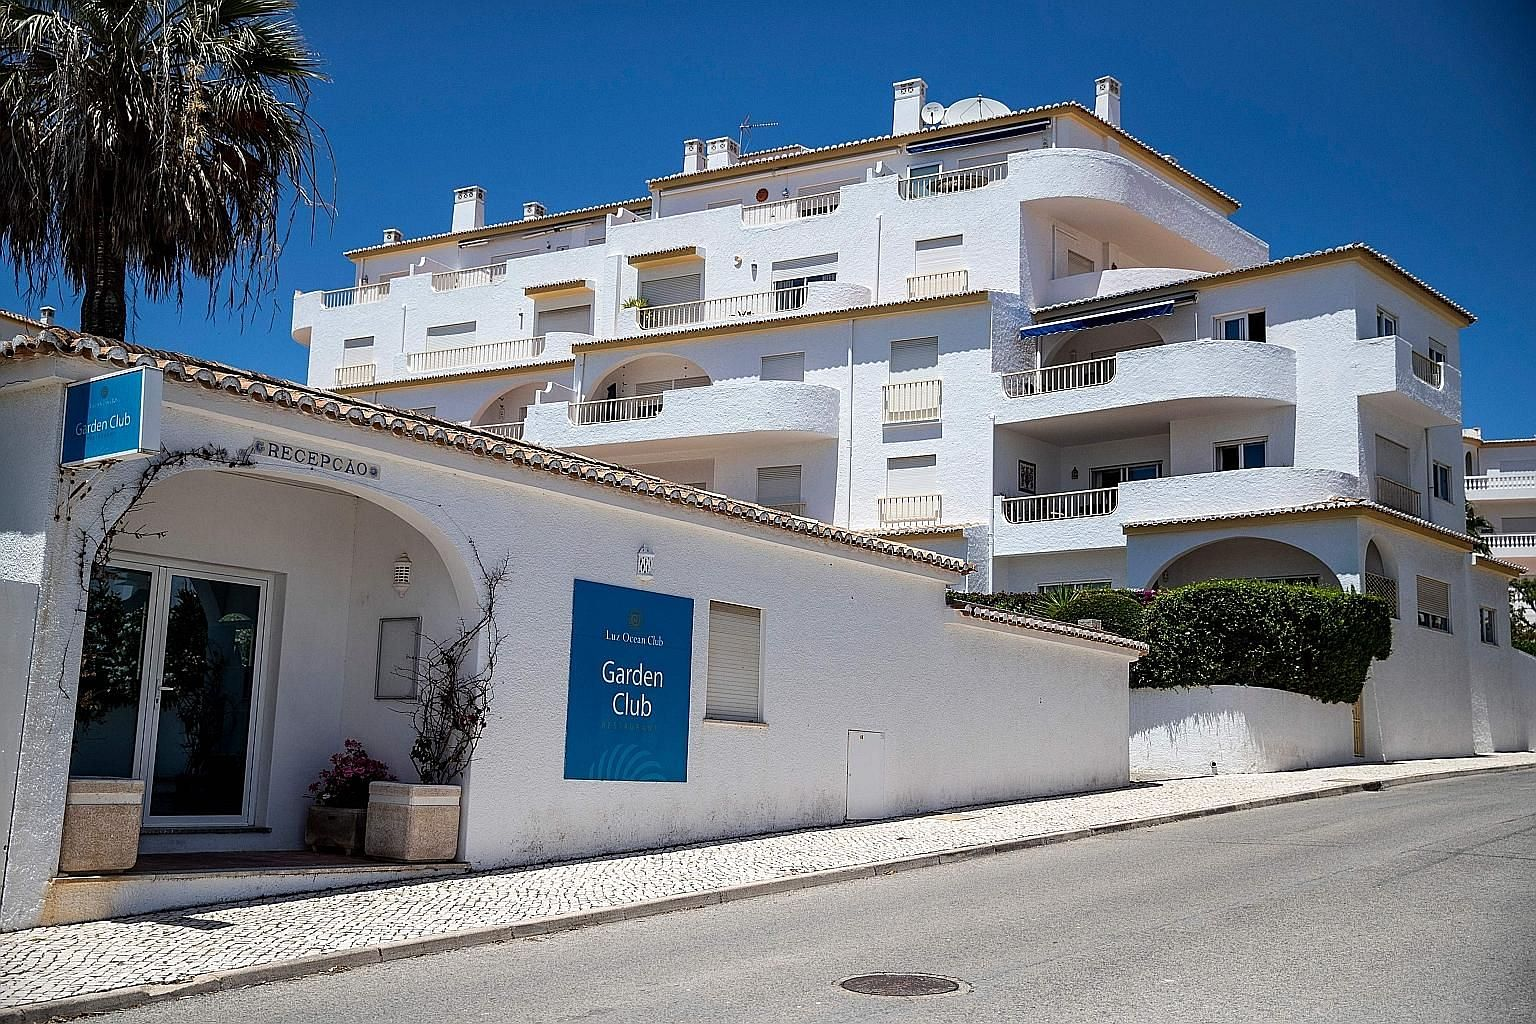 The hotel in Portugal where three-year-old Madeleine McCann disappeared in 2007 while on holiday with her family. The German authorities say she is now assumed to be dead. PHOTO: AGENCE FRANCE-PRESSE